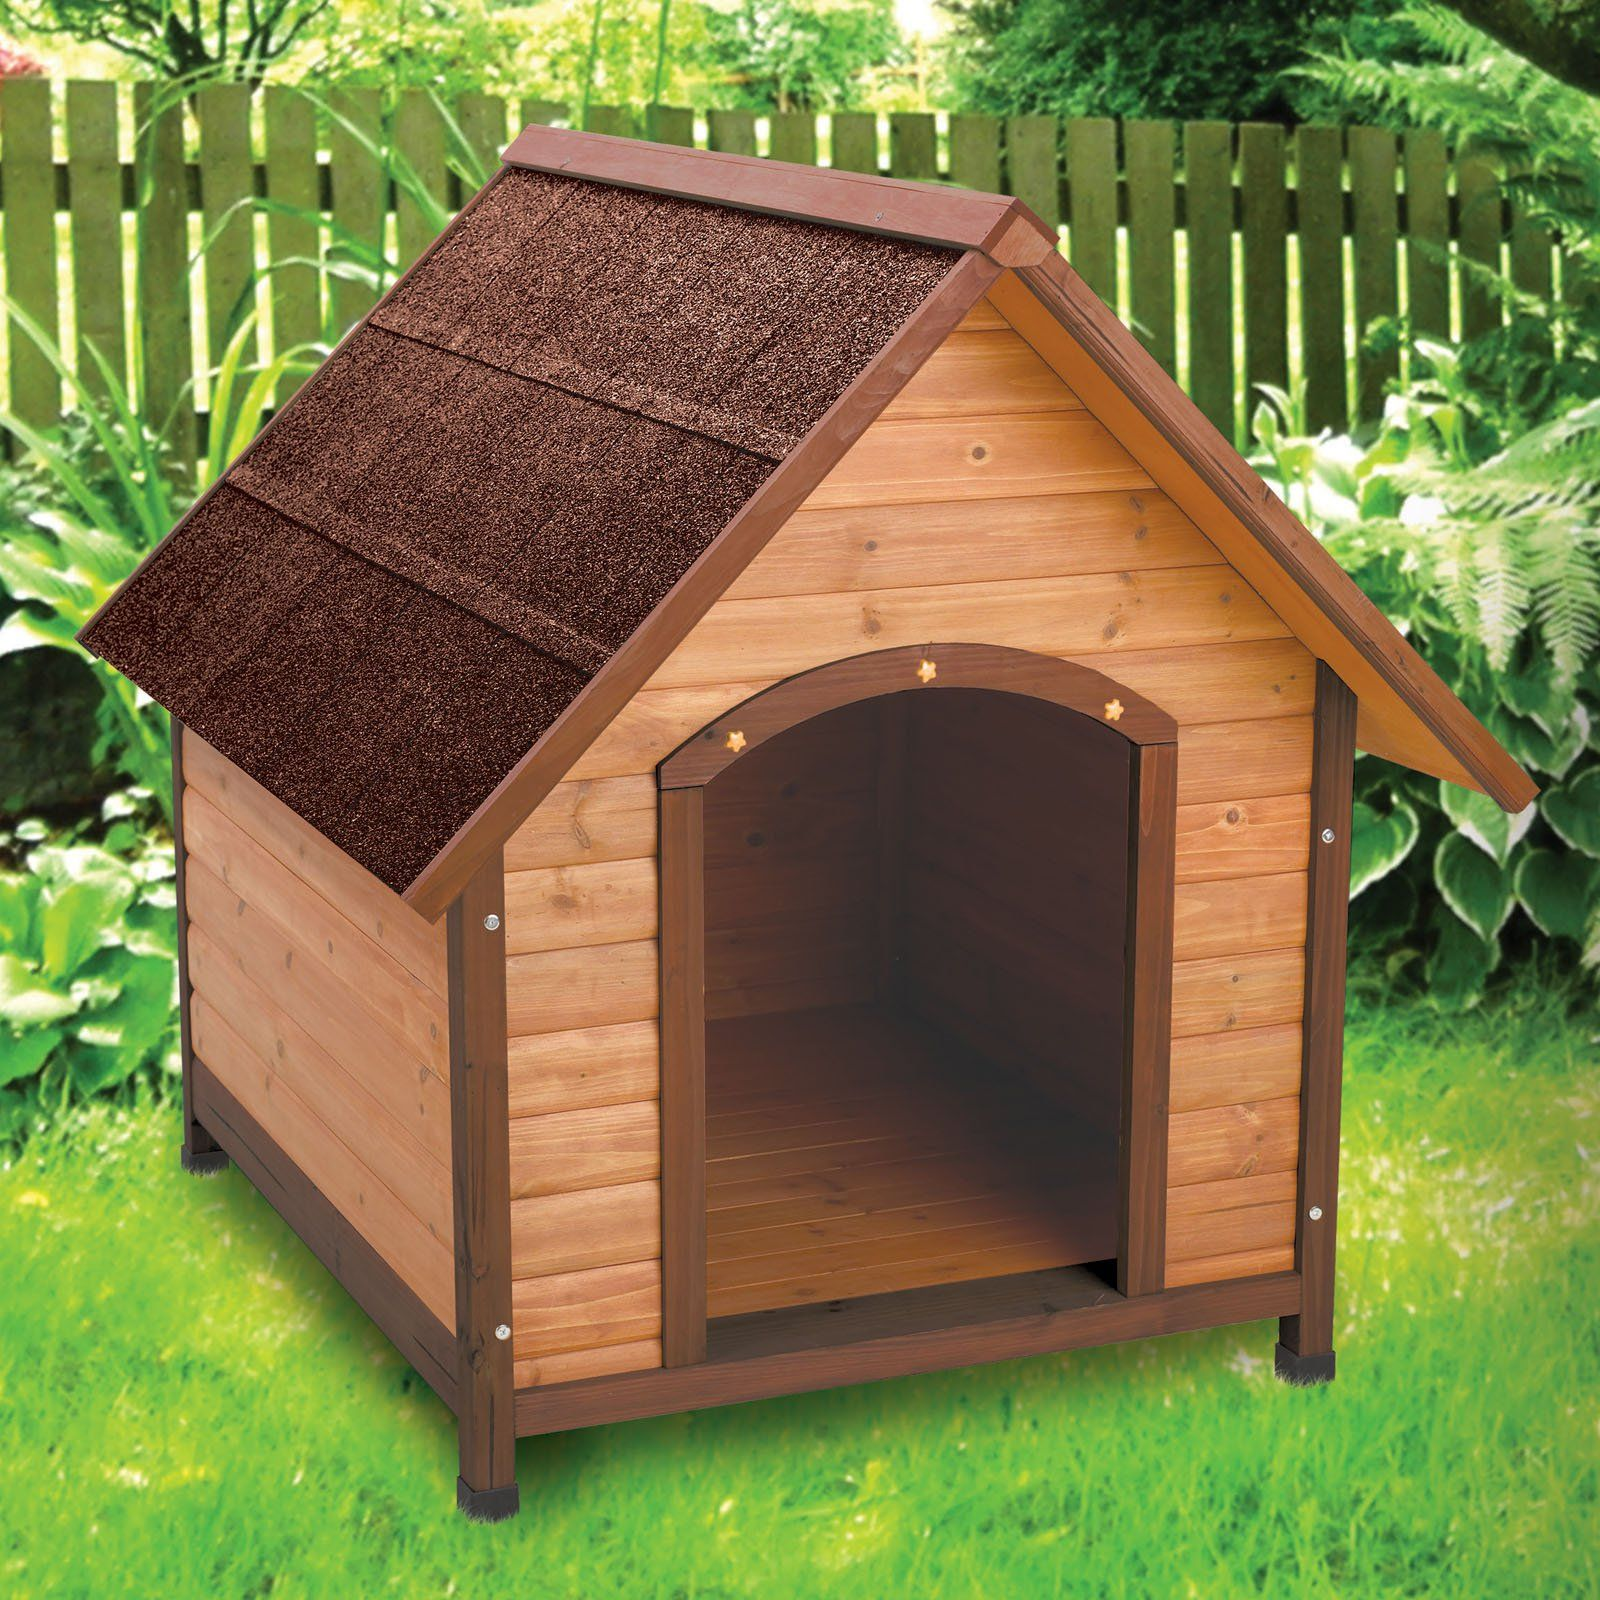 ware premium a frame dog house in 2019 products wood dog house rh pinterest com